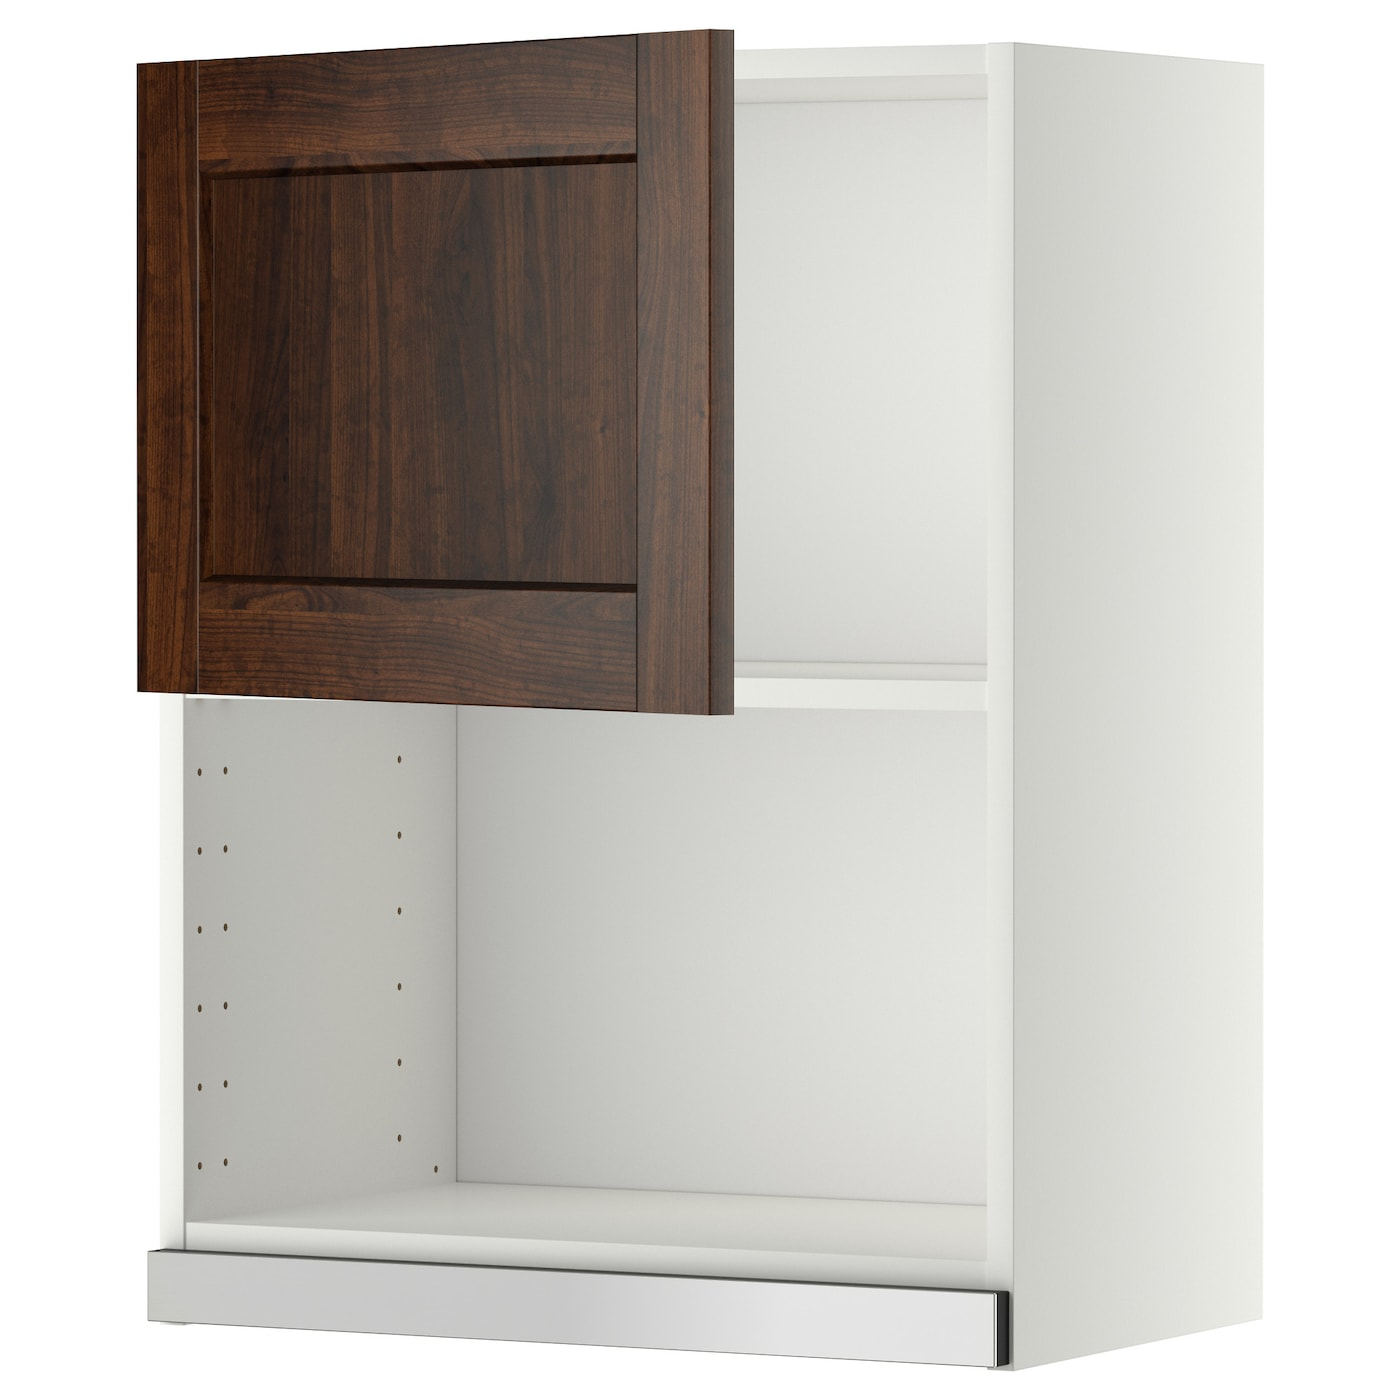 METOD Wall cabinet for microwave oven White edserum brown